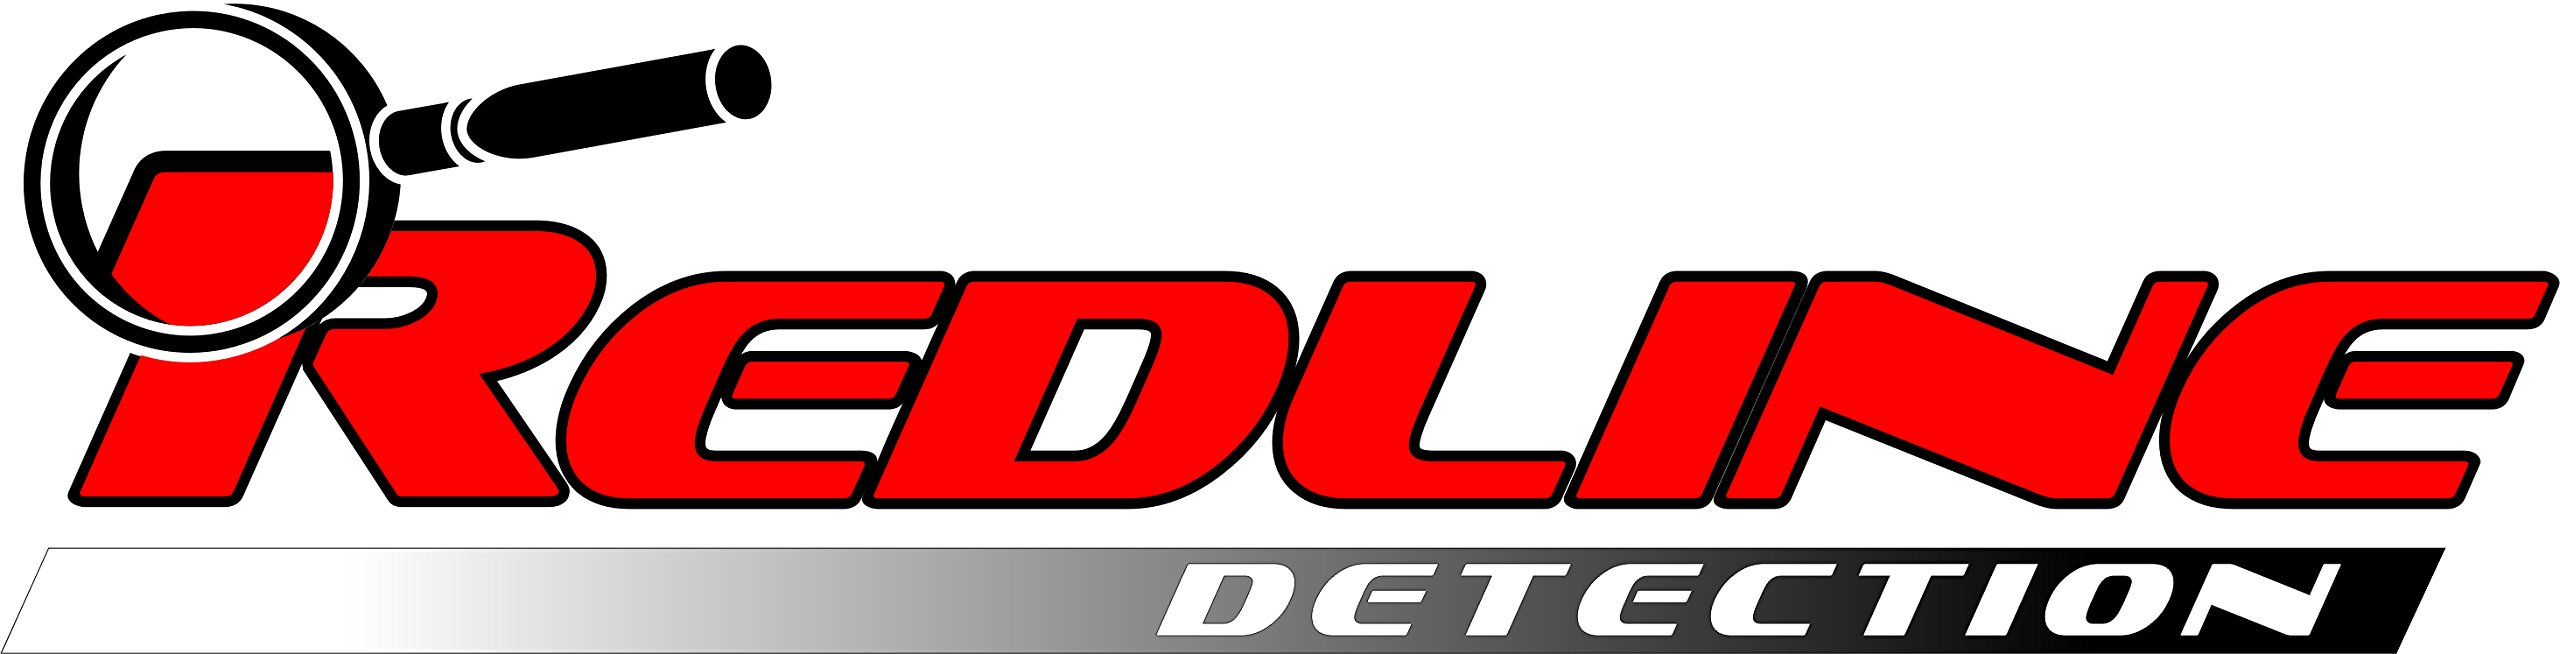 Redline Detection 30405 (disc) Power Steering Fluid - 1gallon (4)